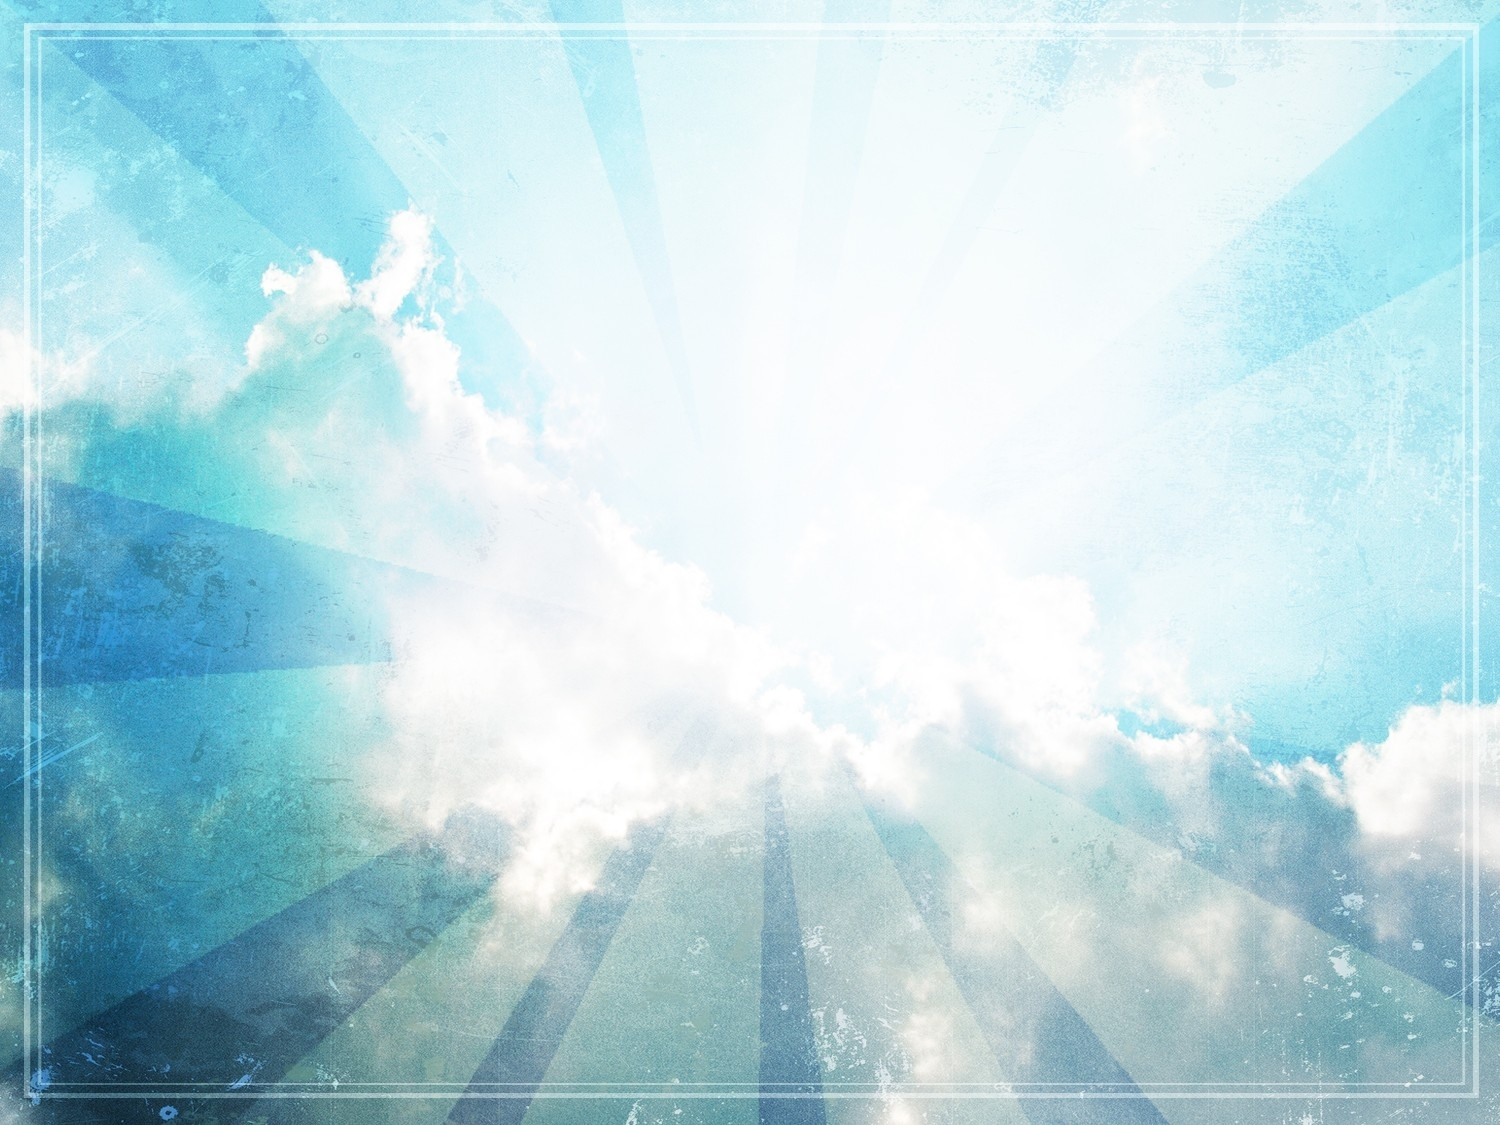 worship backgrounds | there is hope | worship backgrounds